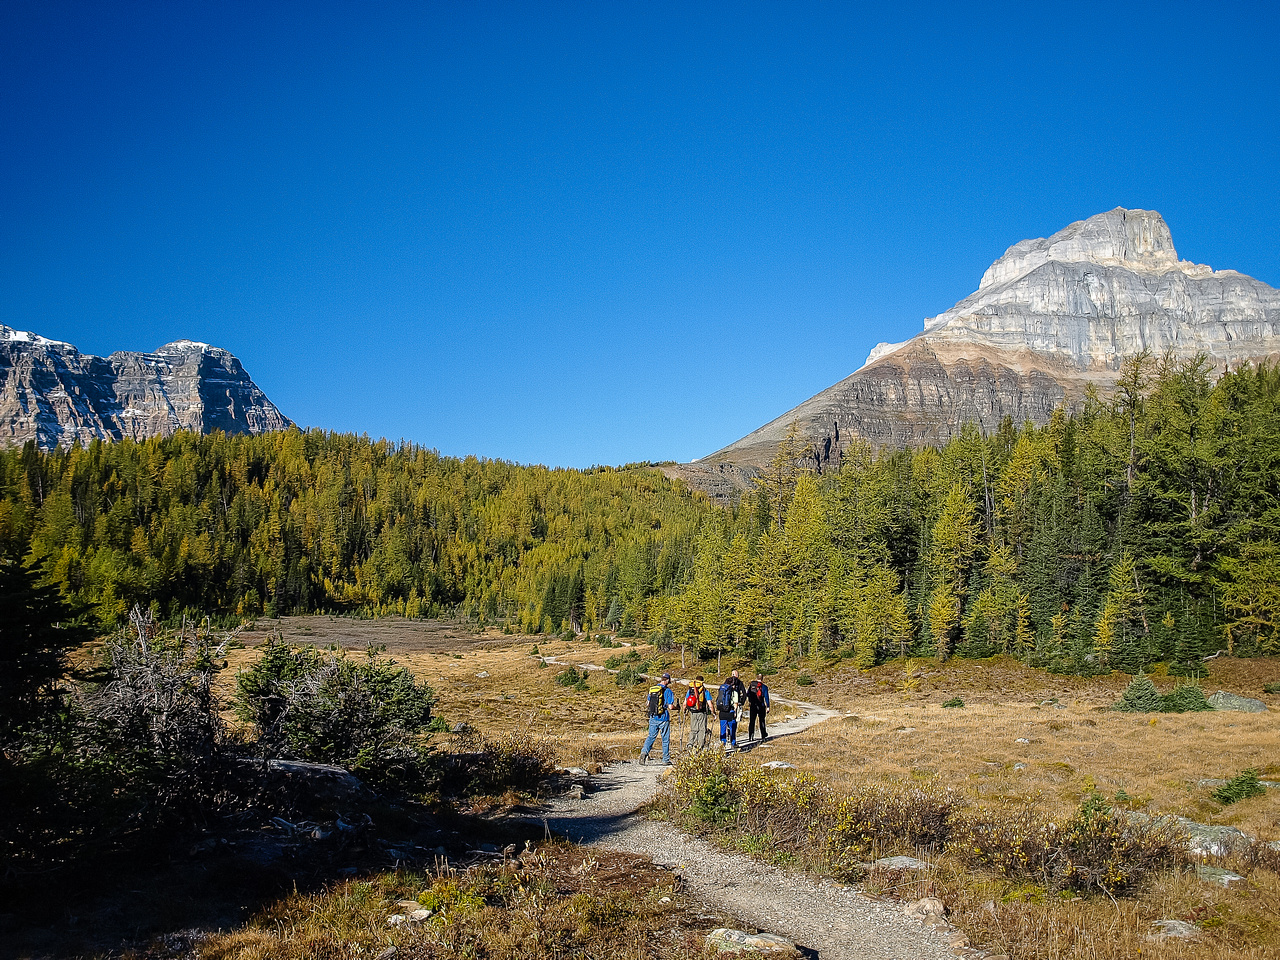 It's going to be a great day! This view is of another gorgeous peak in the Valley of Ten Peaks - Eiffel.